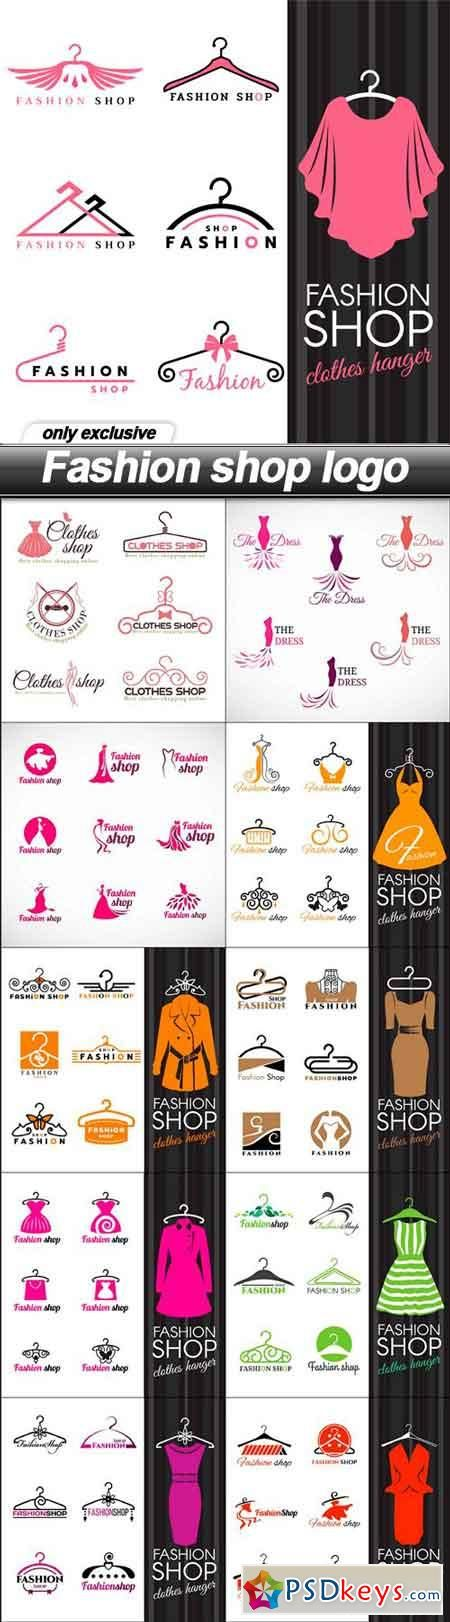 Fashion shop logo - 11 EPS